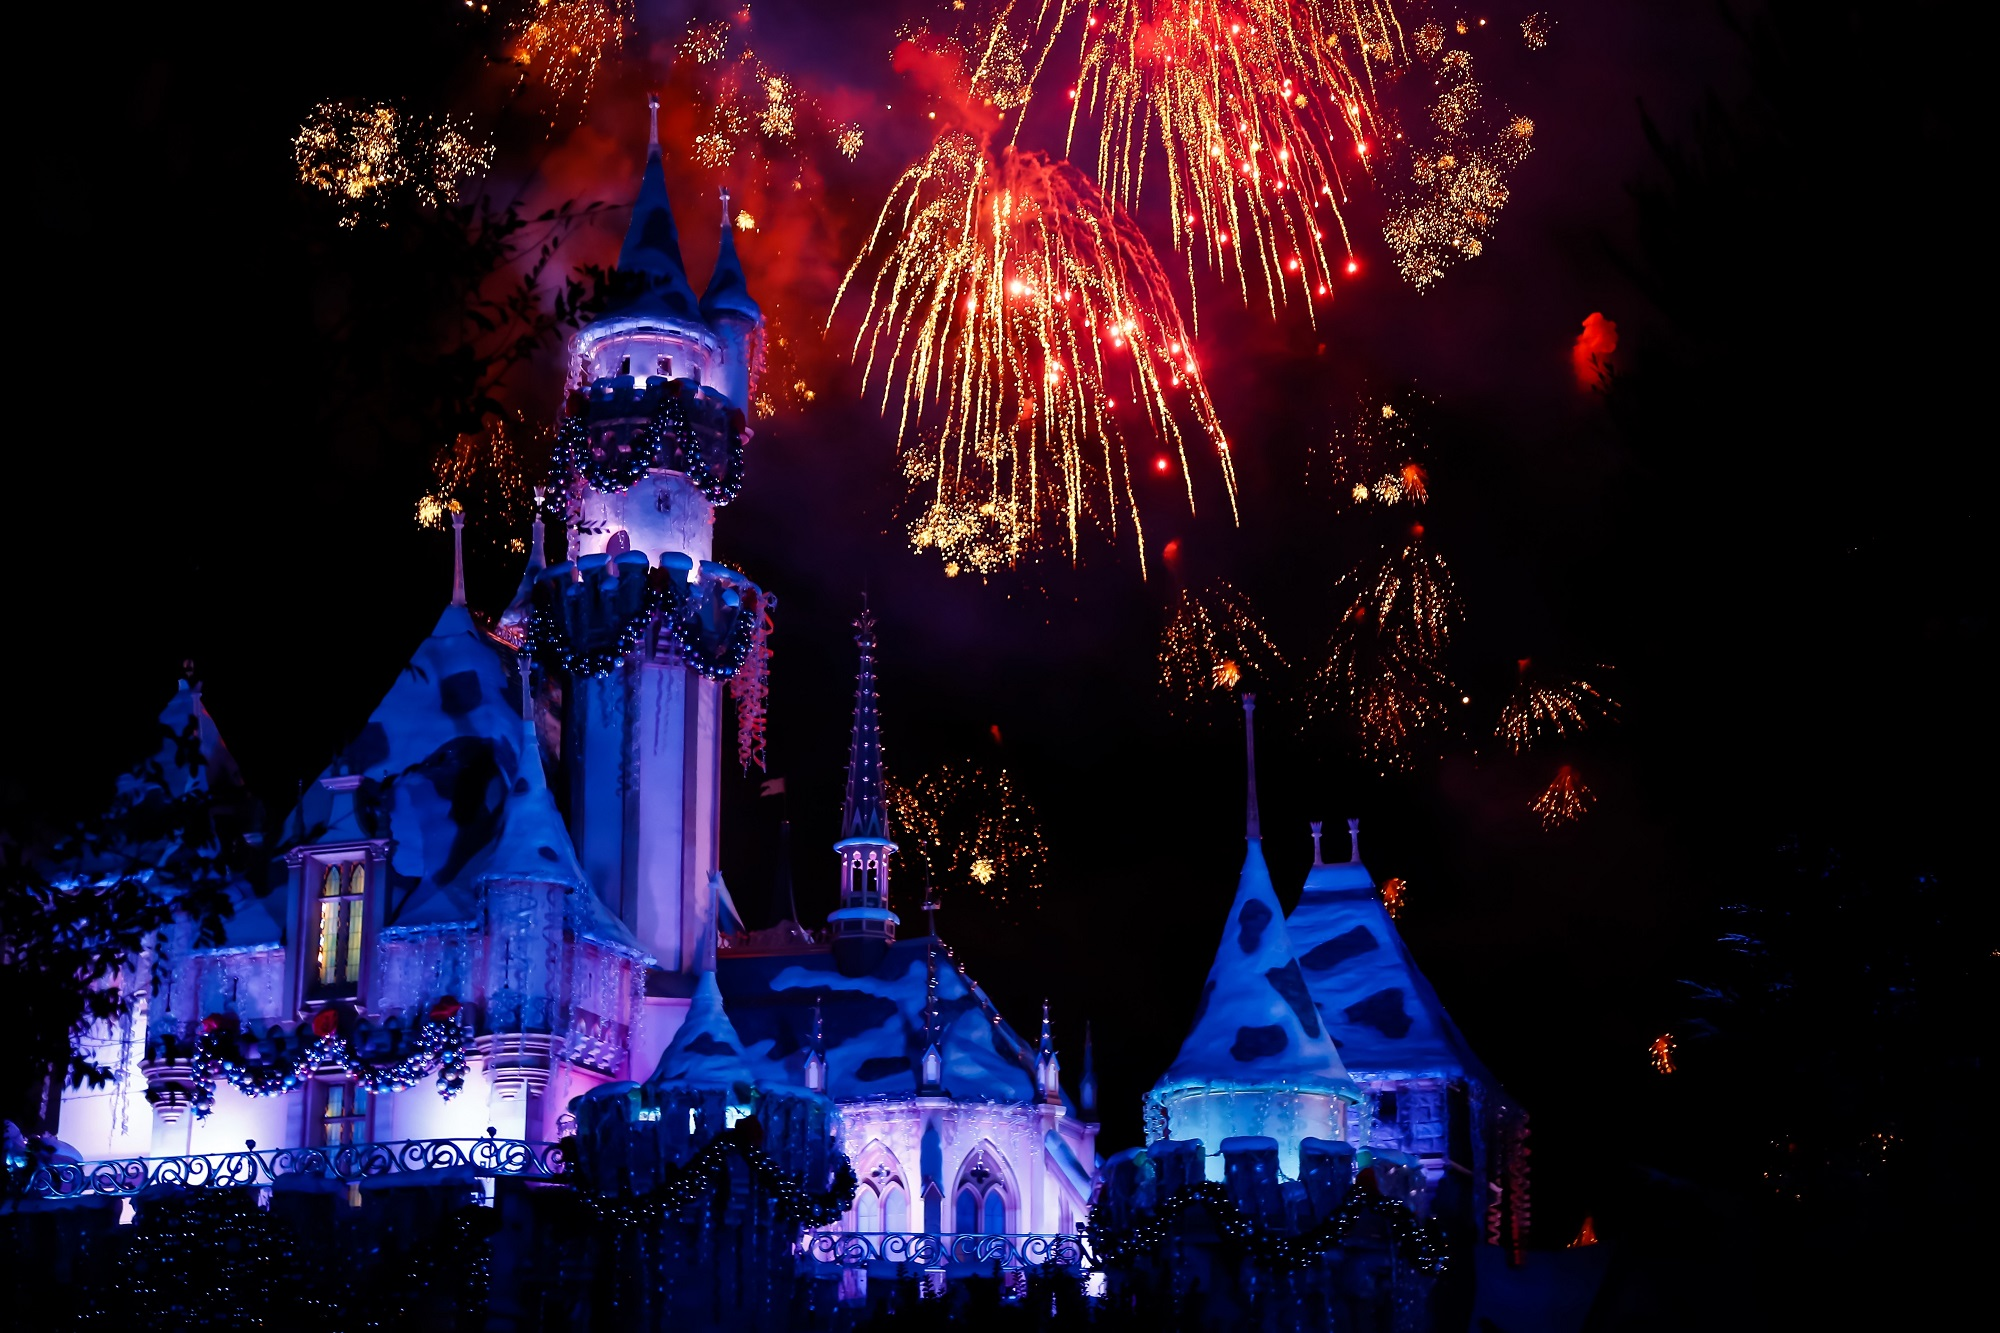 The-Best-Orange-County-Events-At-Disneyland-that-you-can-enjoy-To-The-Fullest